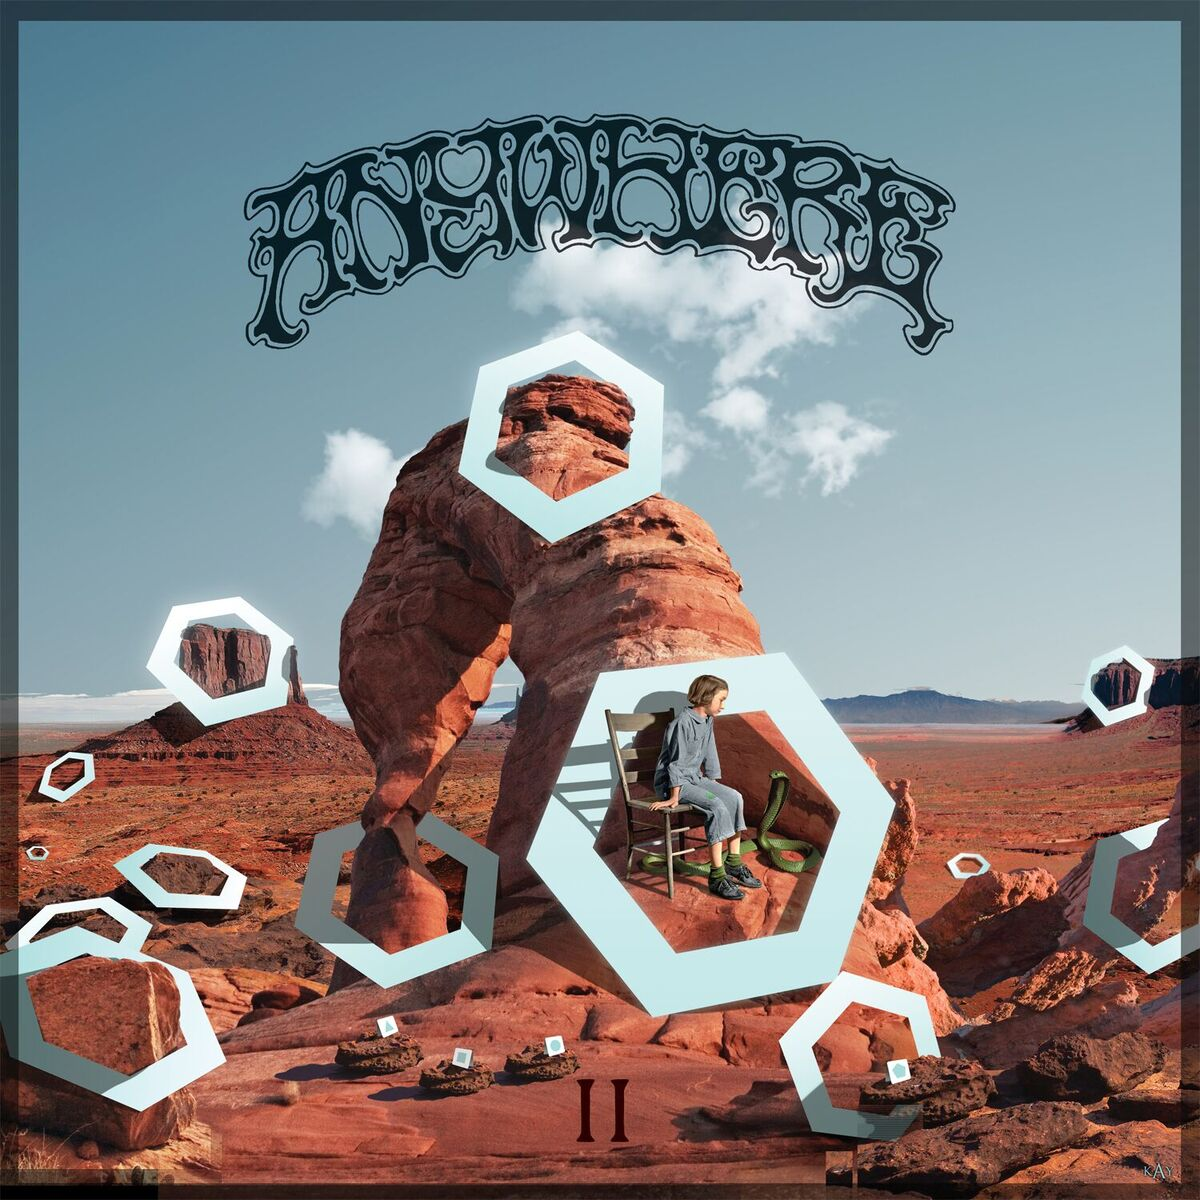 REVIEW: Psyche-Skronk Californian band Anywhere are back with a sequel